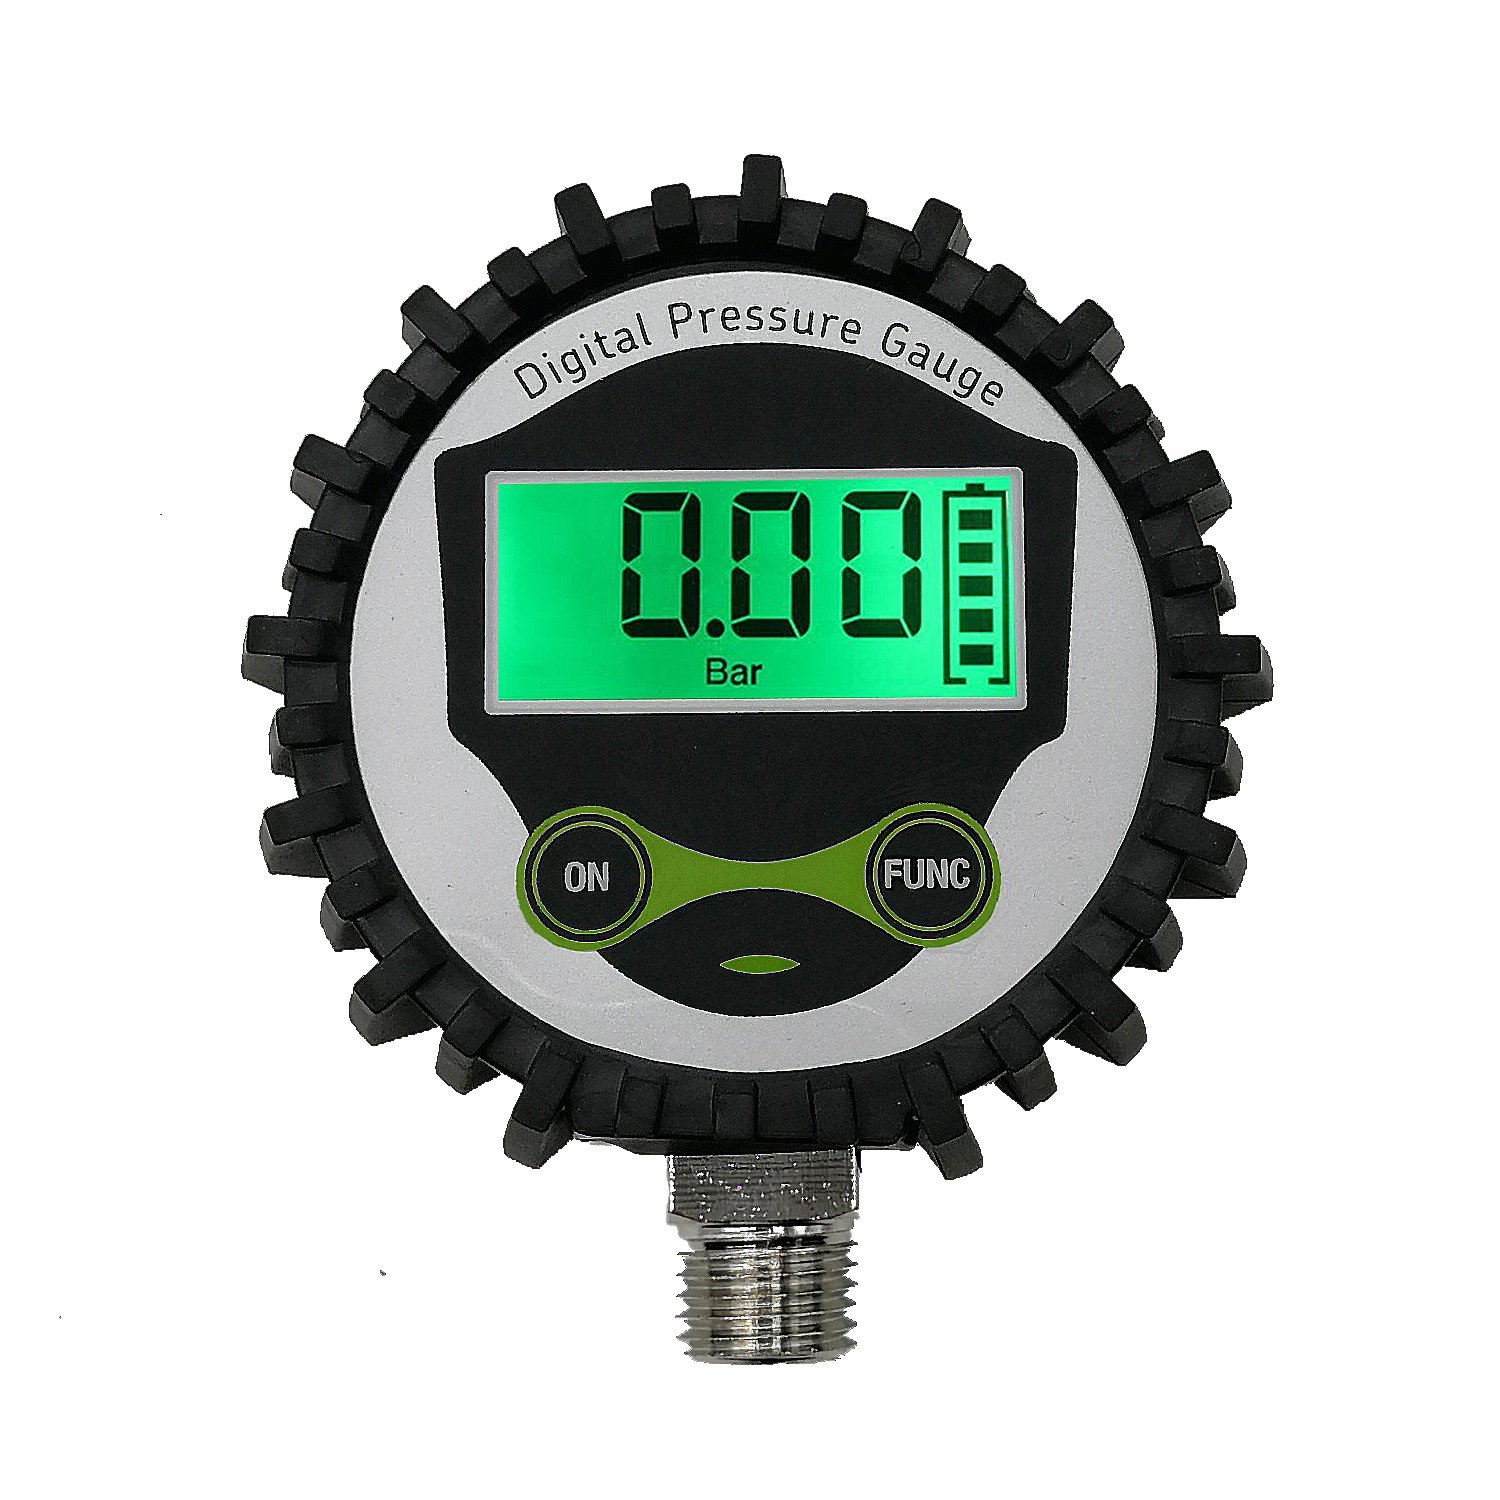 Digital Gas Pressure Gauge with 1/4'' NPT Bottom Connector and Rubber Protector by Uharbour, 0-200psi, Accuracy 1% .F.S.